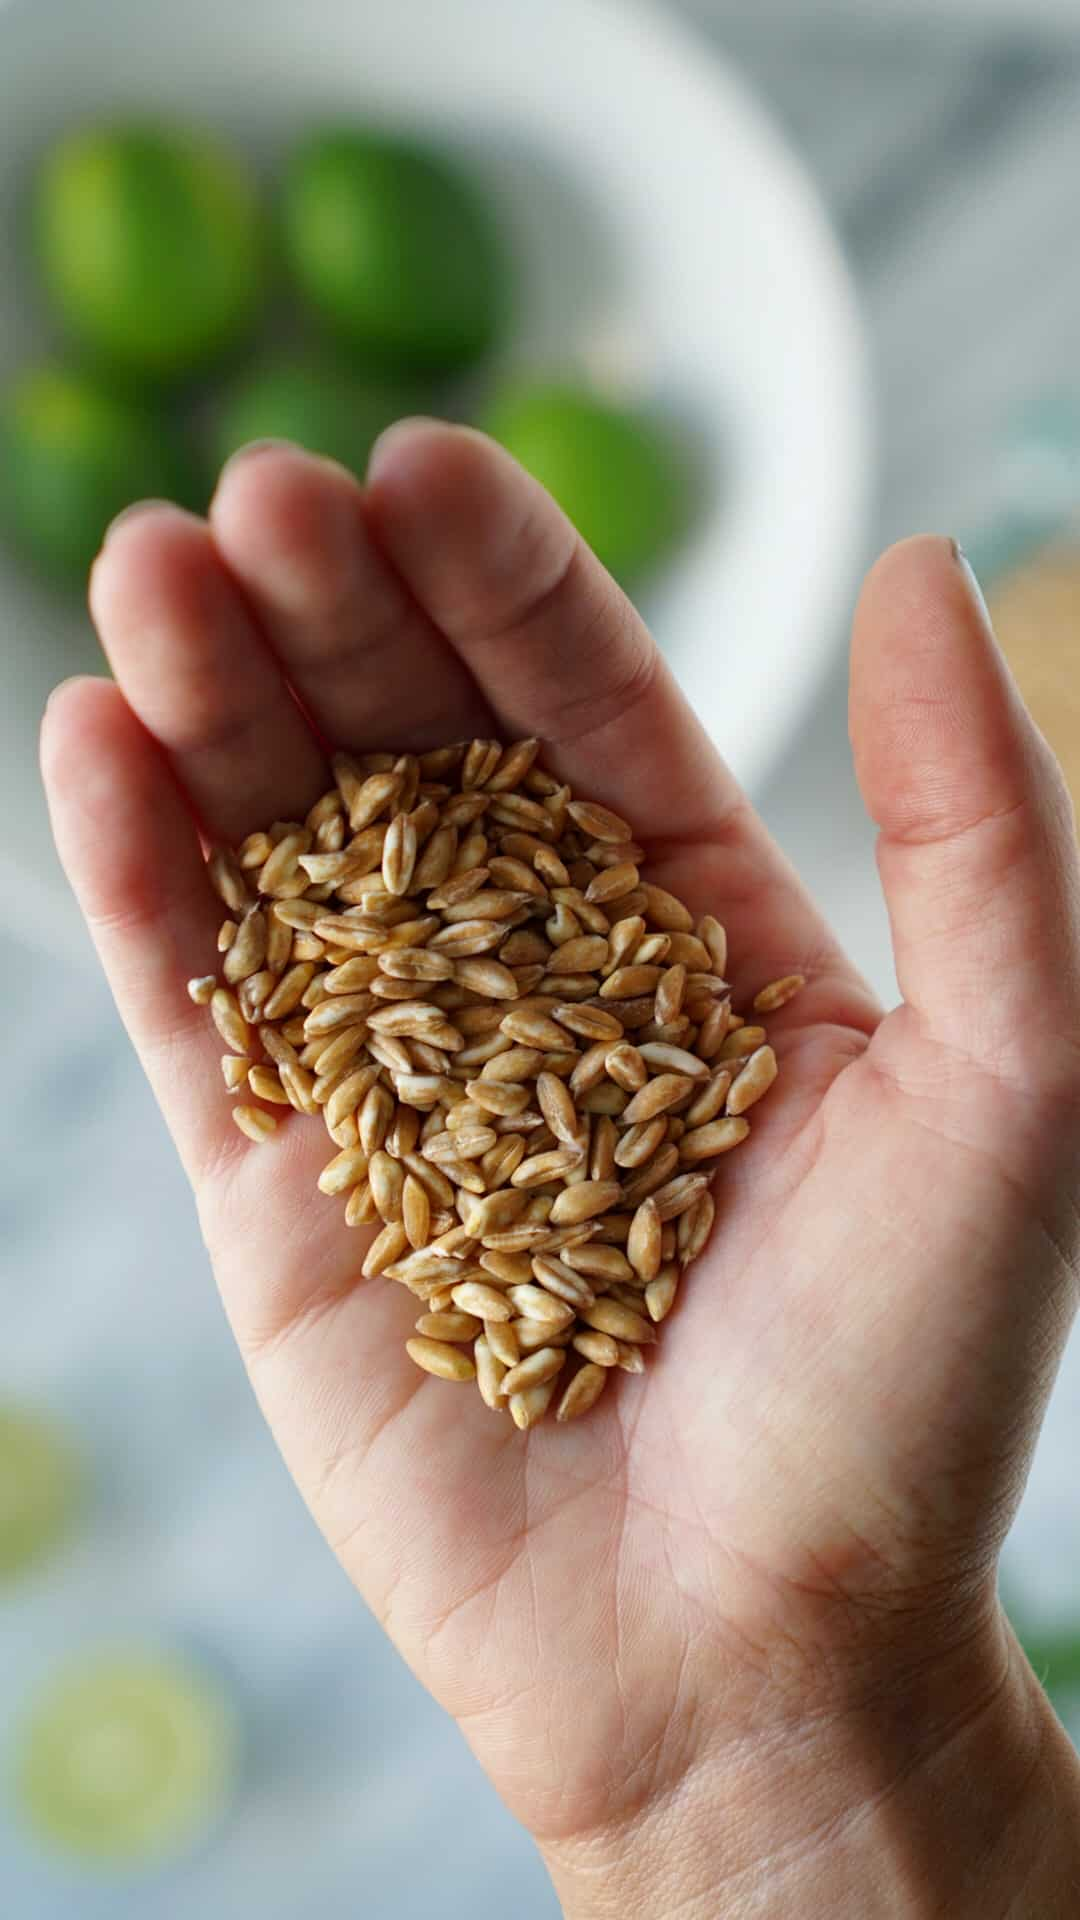 Raw farro in hand with limes in the background